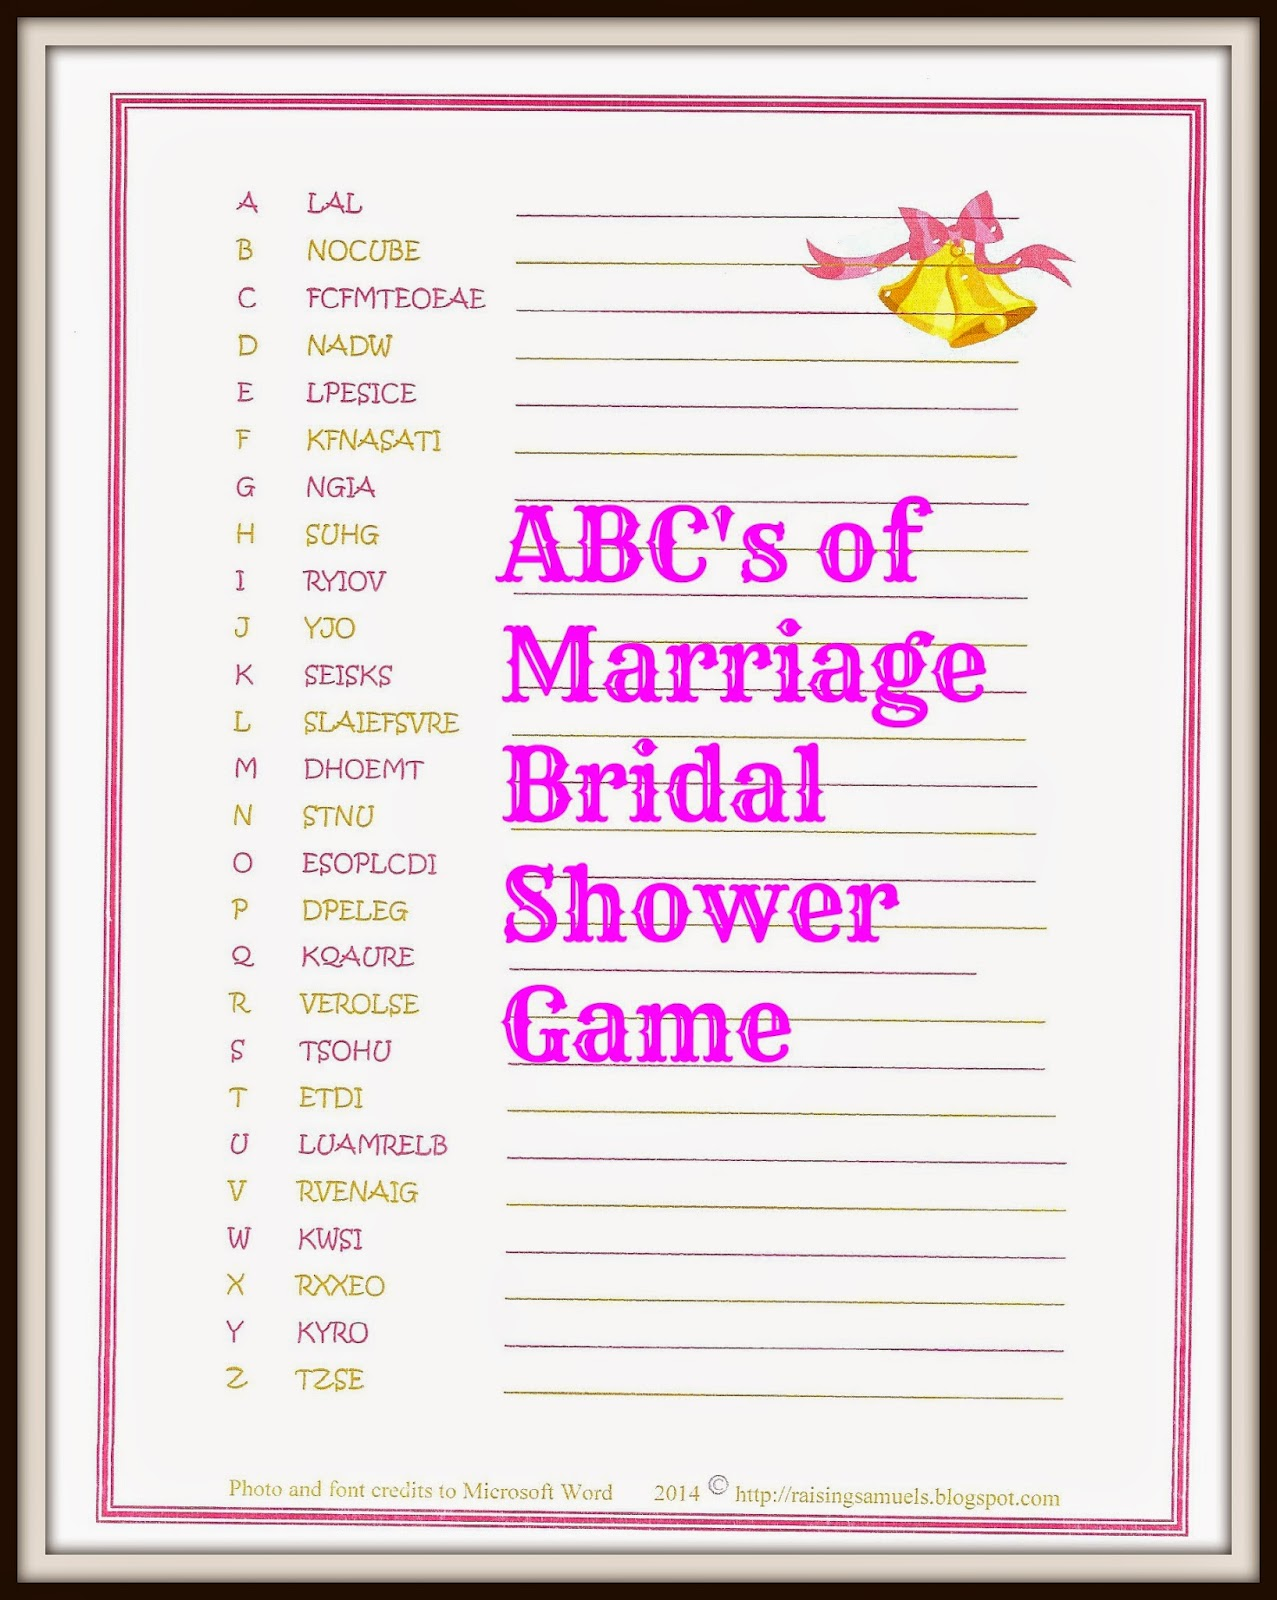 http://raisingsamuels.blogspot.com/2014/05/free-abcs-of-marriage-bridal-shower-game.html